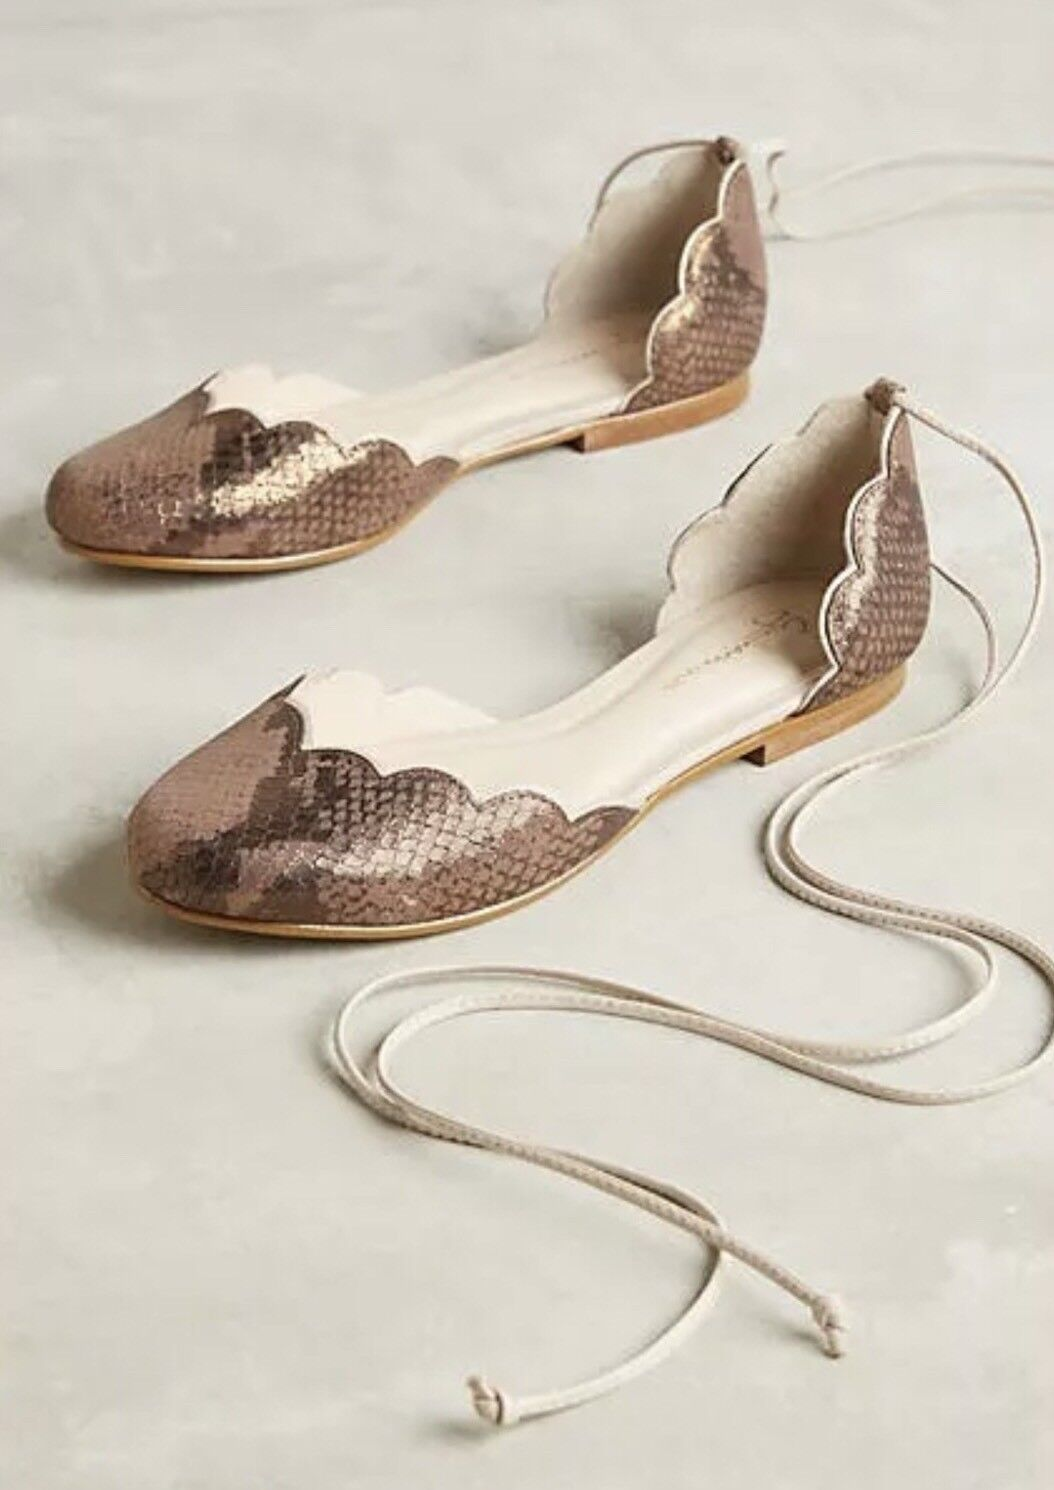 NEW Anthropologie Scalloped D'orsay Flats by Guilhermina Bronze Print Größe 37